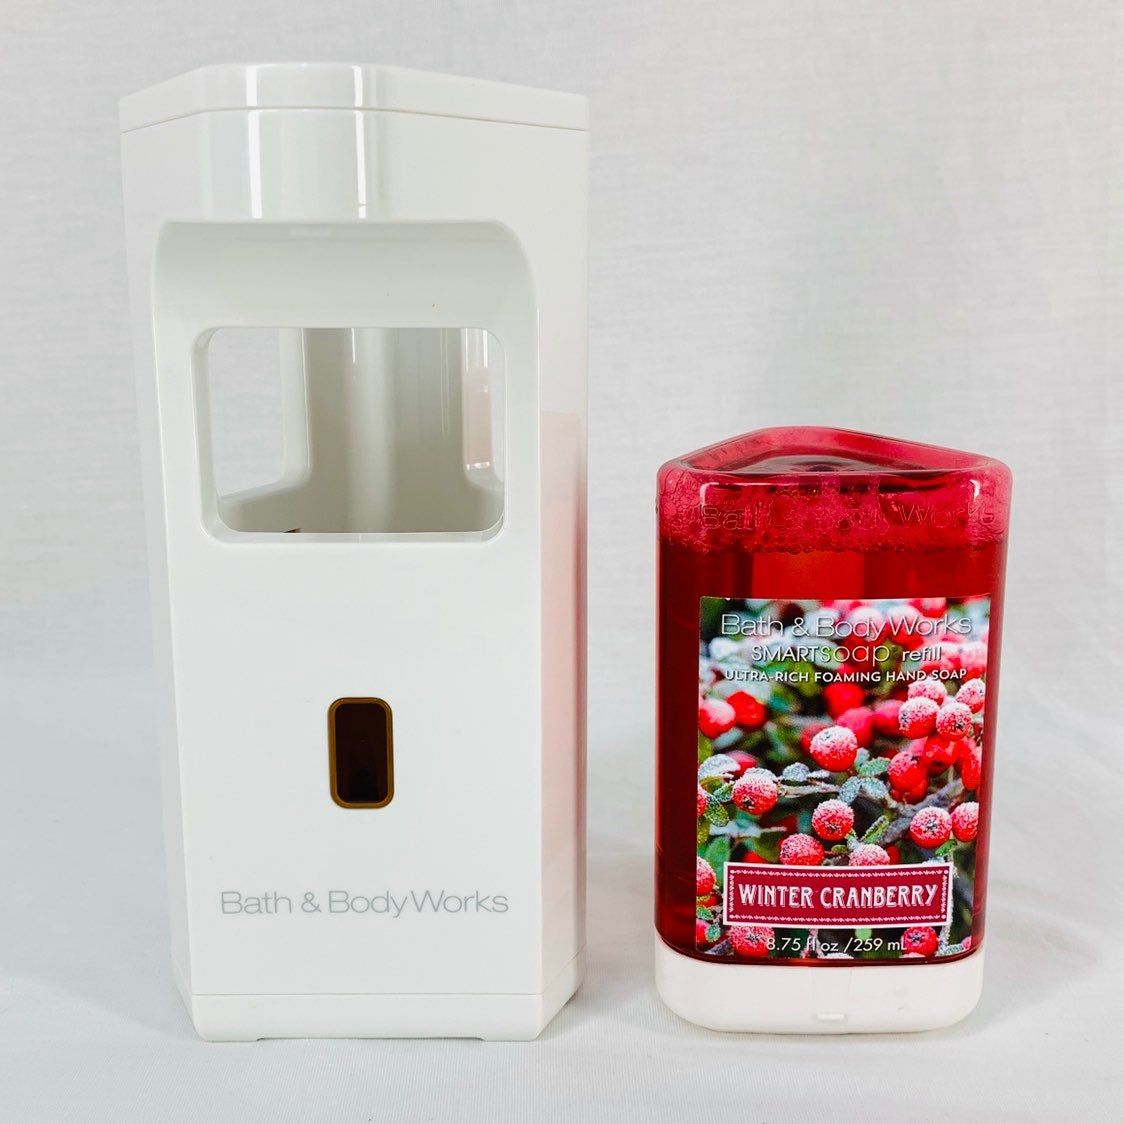 Bath Body Works Smart Soap Dispenser Refill Winter Cranberry Tested Works Item Is Currently Discontinued Lig Bath And Body Works Bath And Body Cranberry